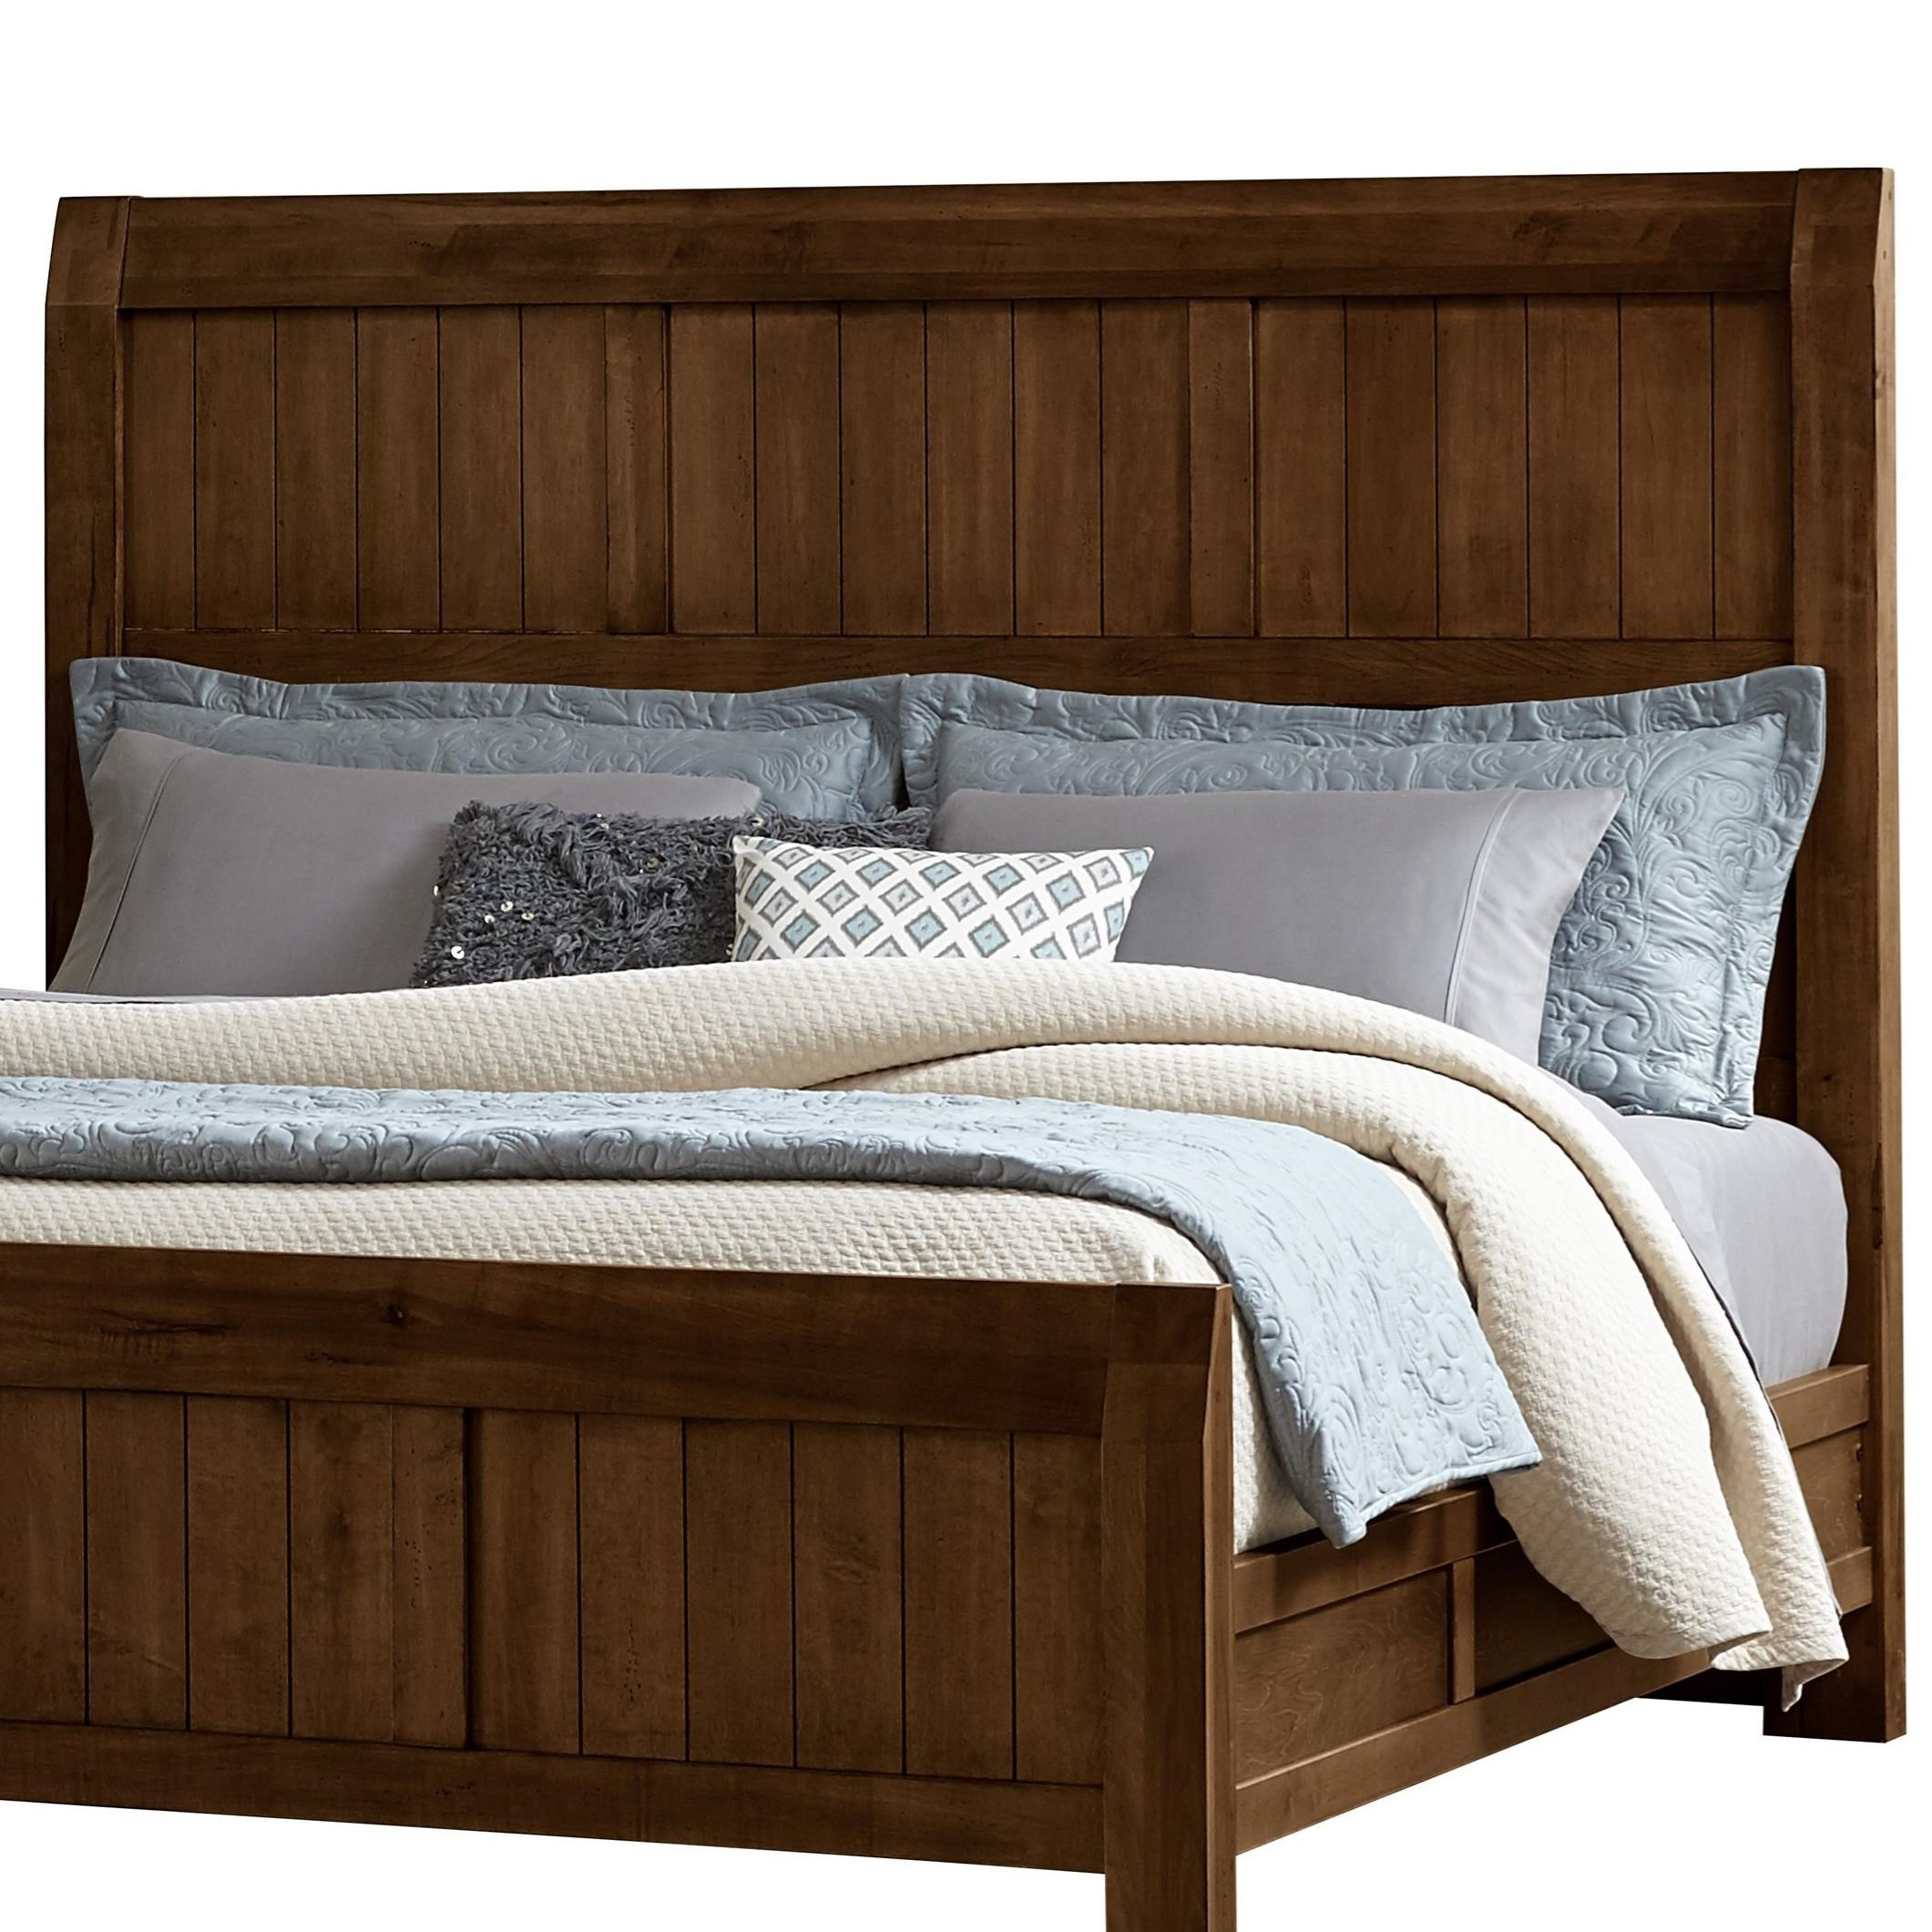 Vaughan Bassett Timber Creek Queen Timber Headboard Value City Furniture Headboards